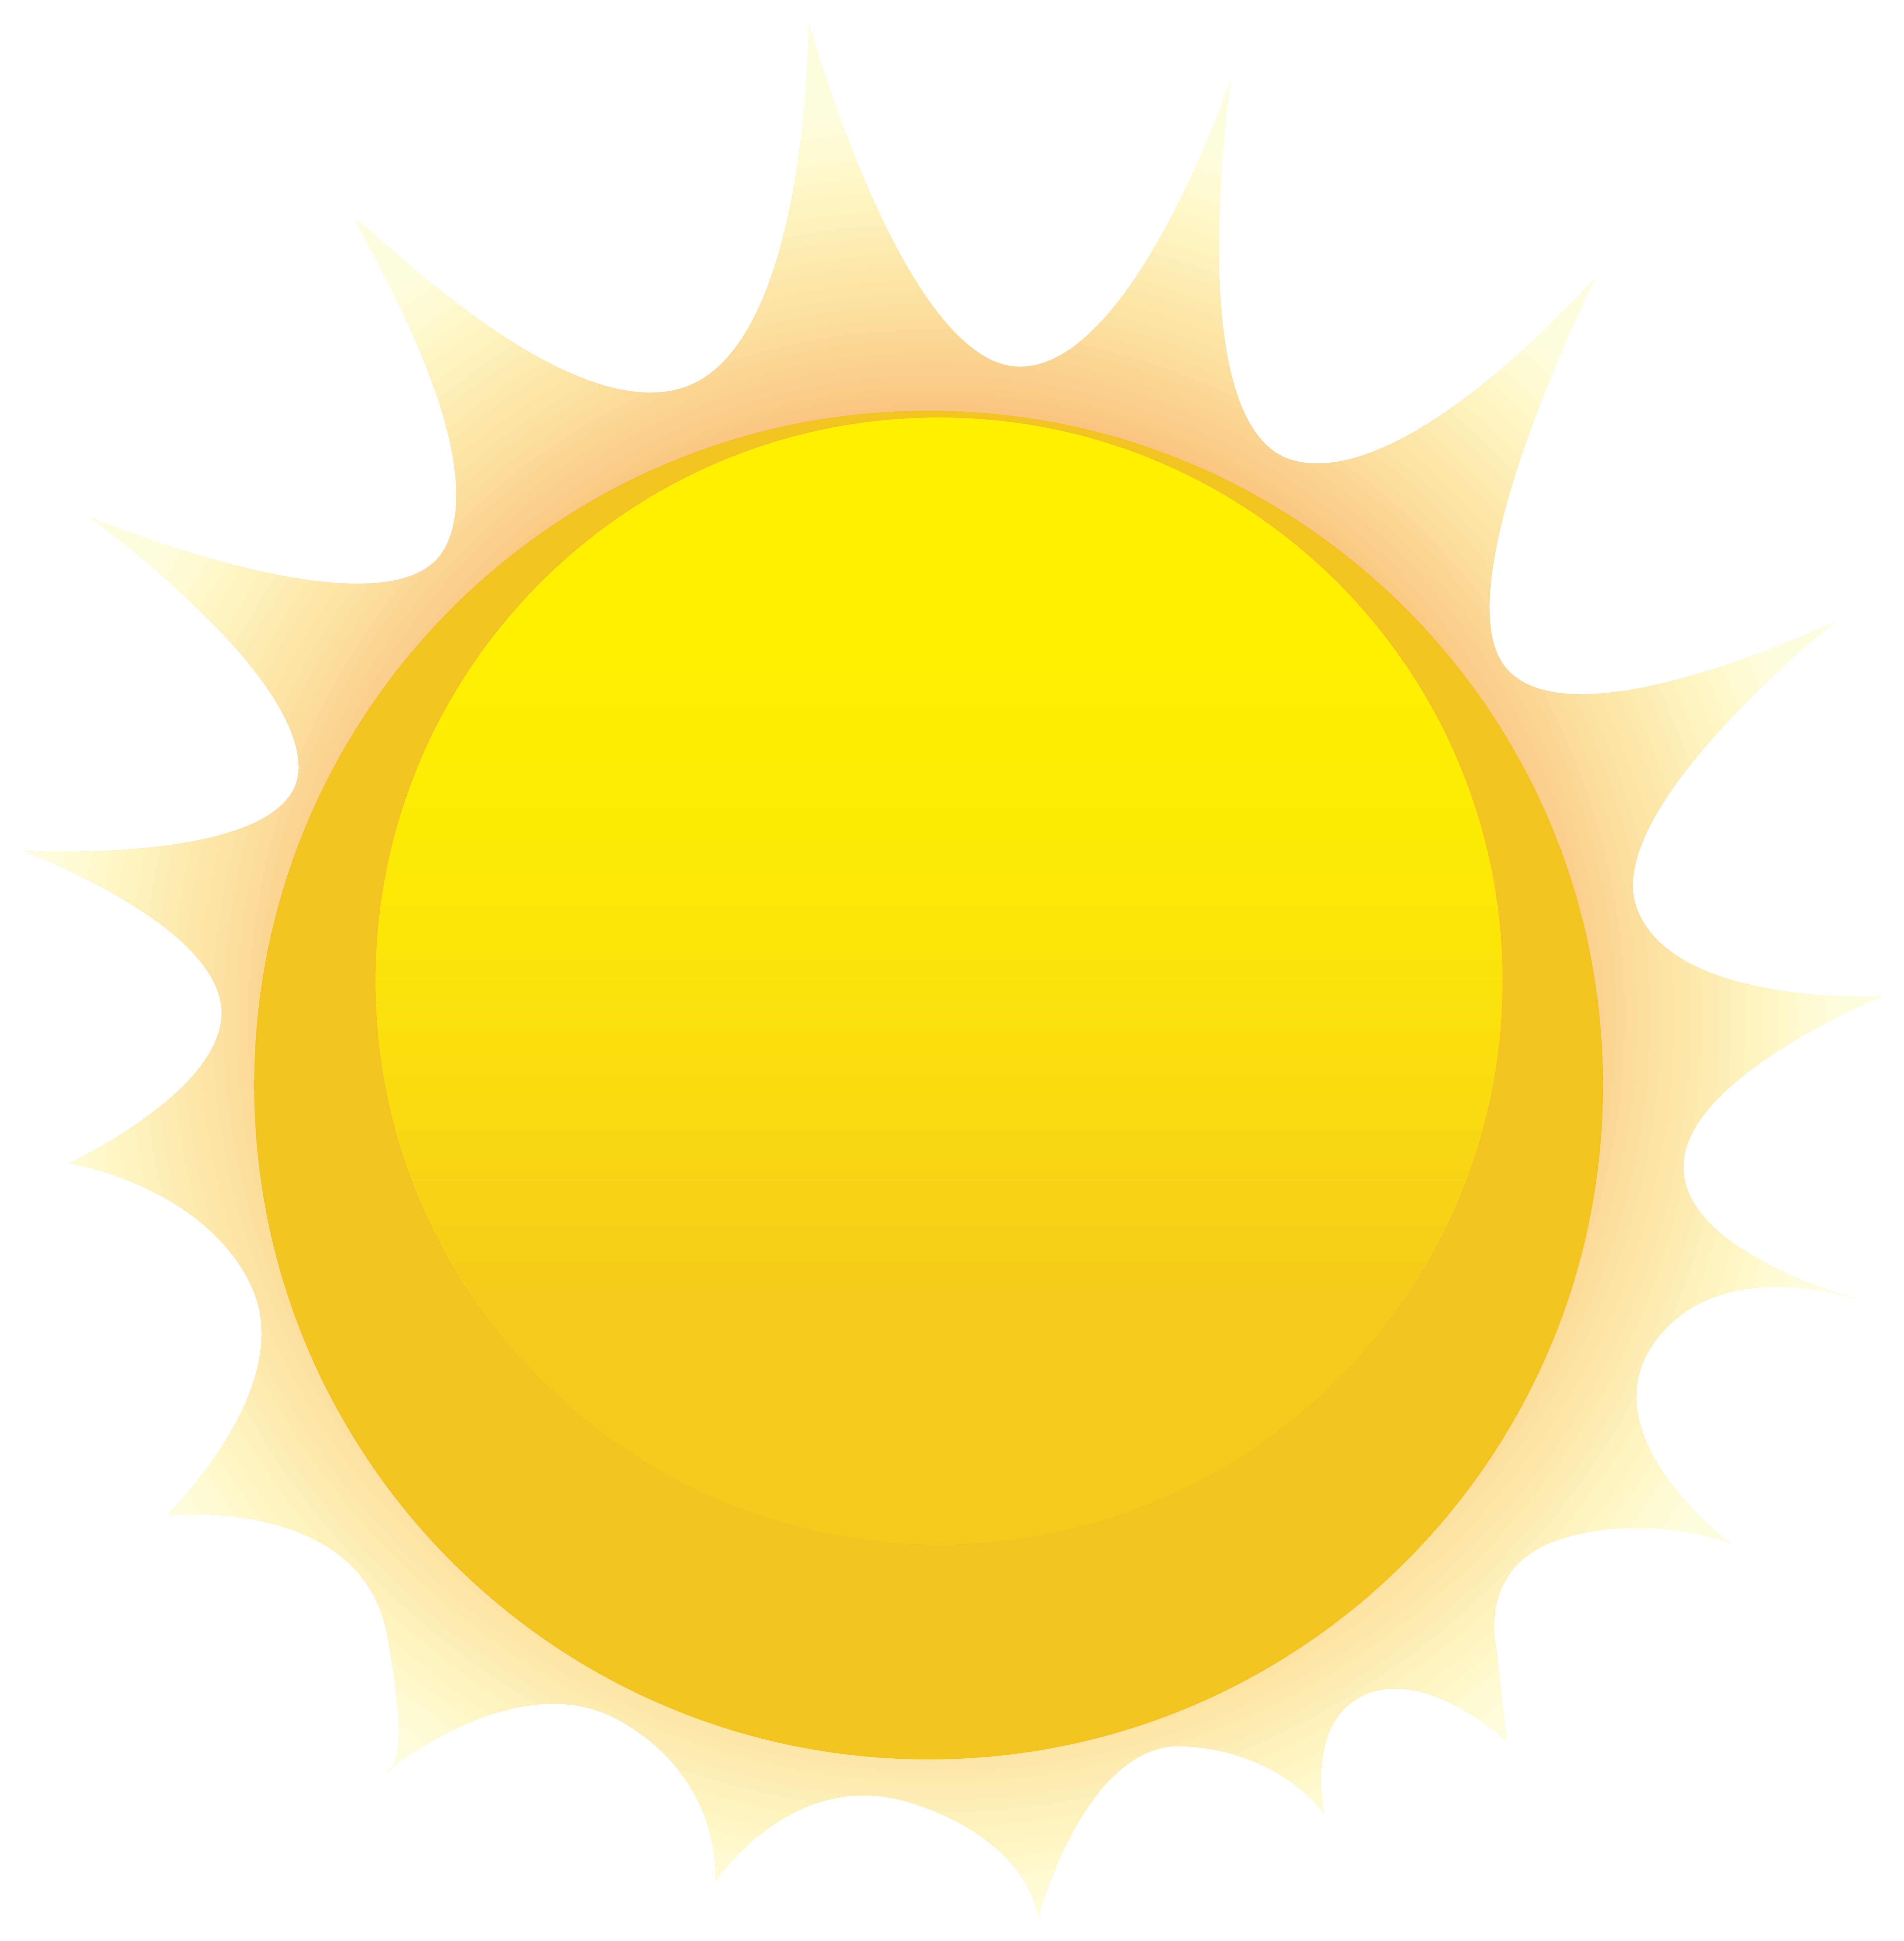 Transparent png image gallery. Clipart sun pattern